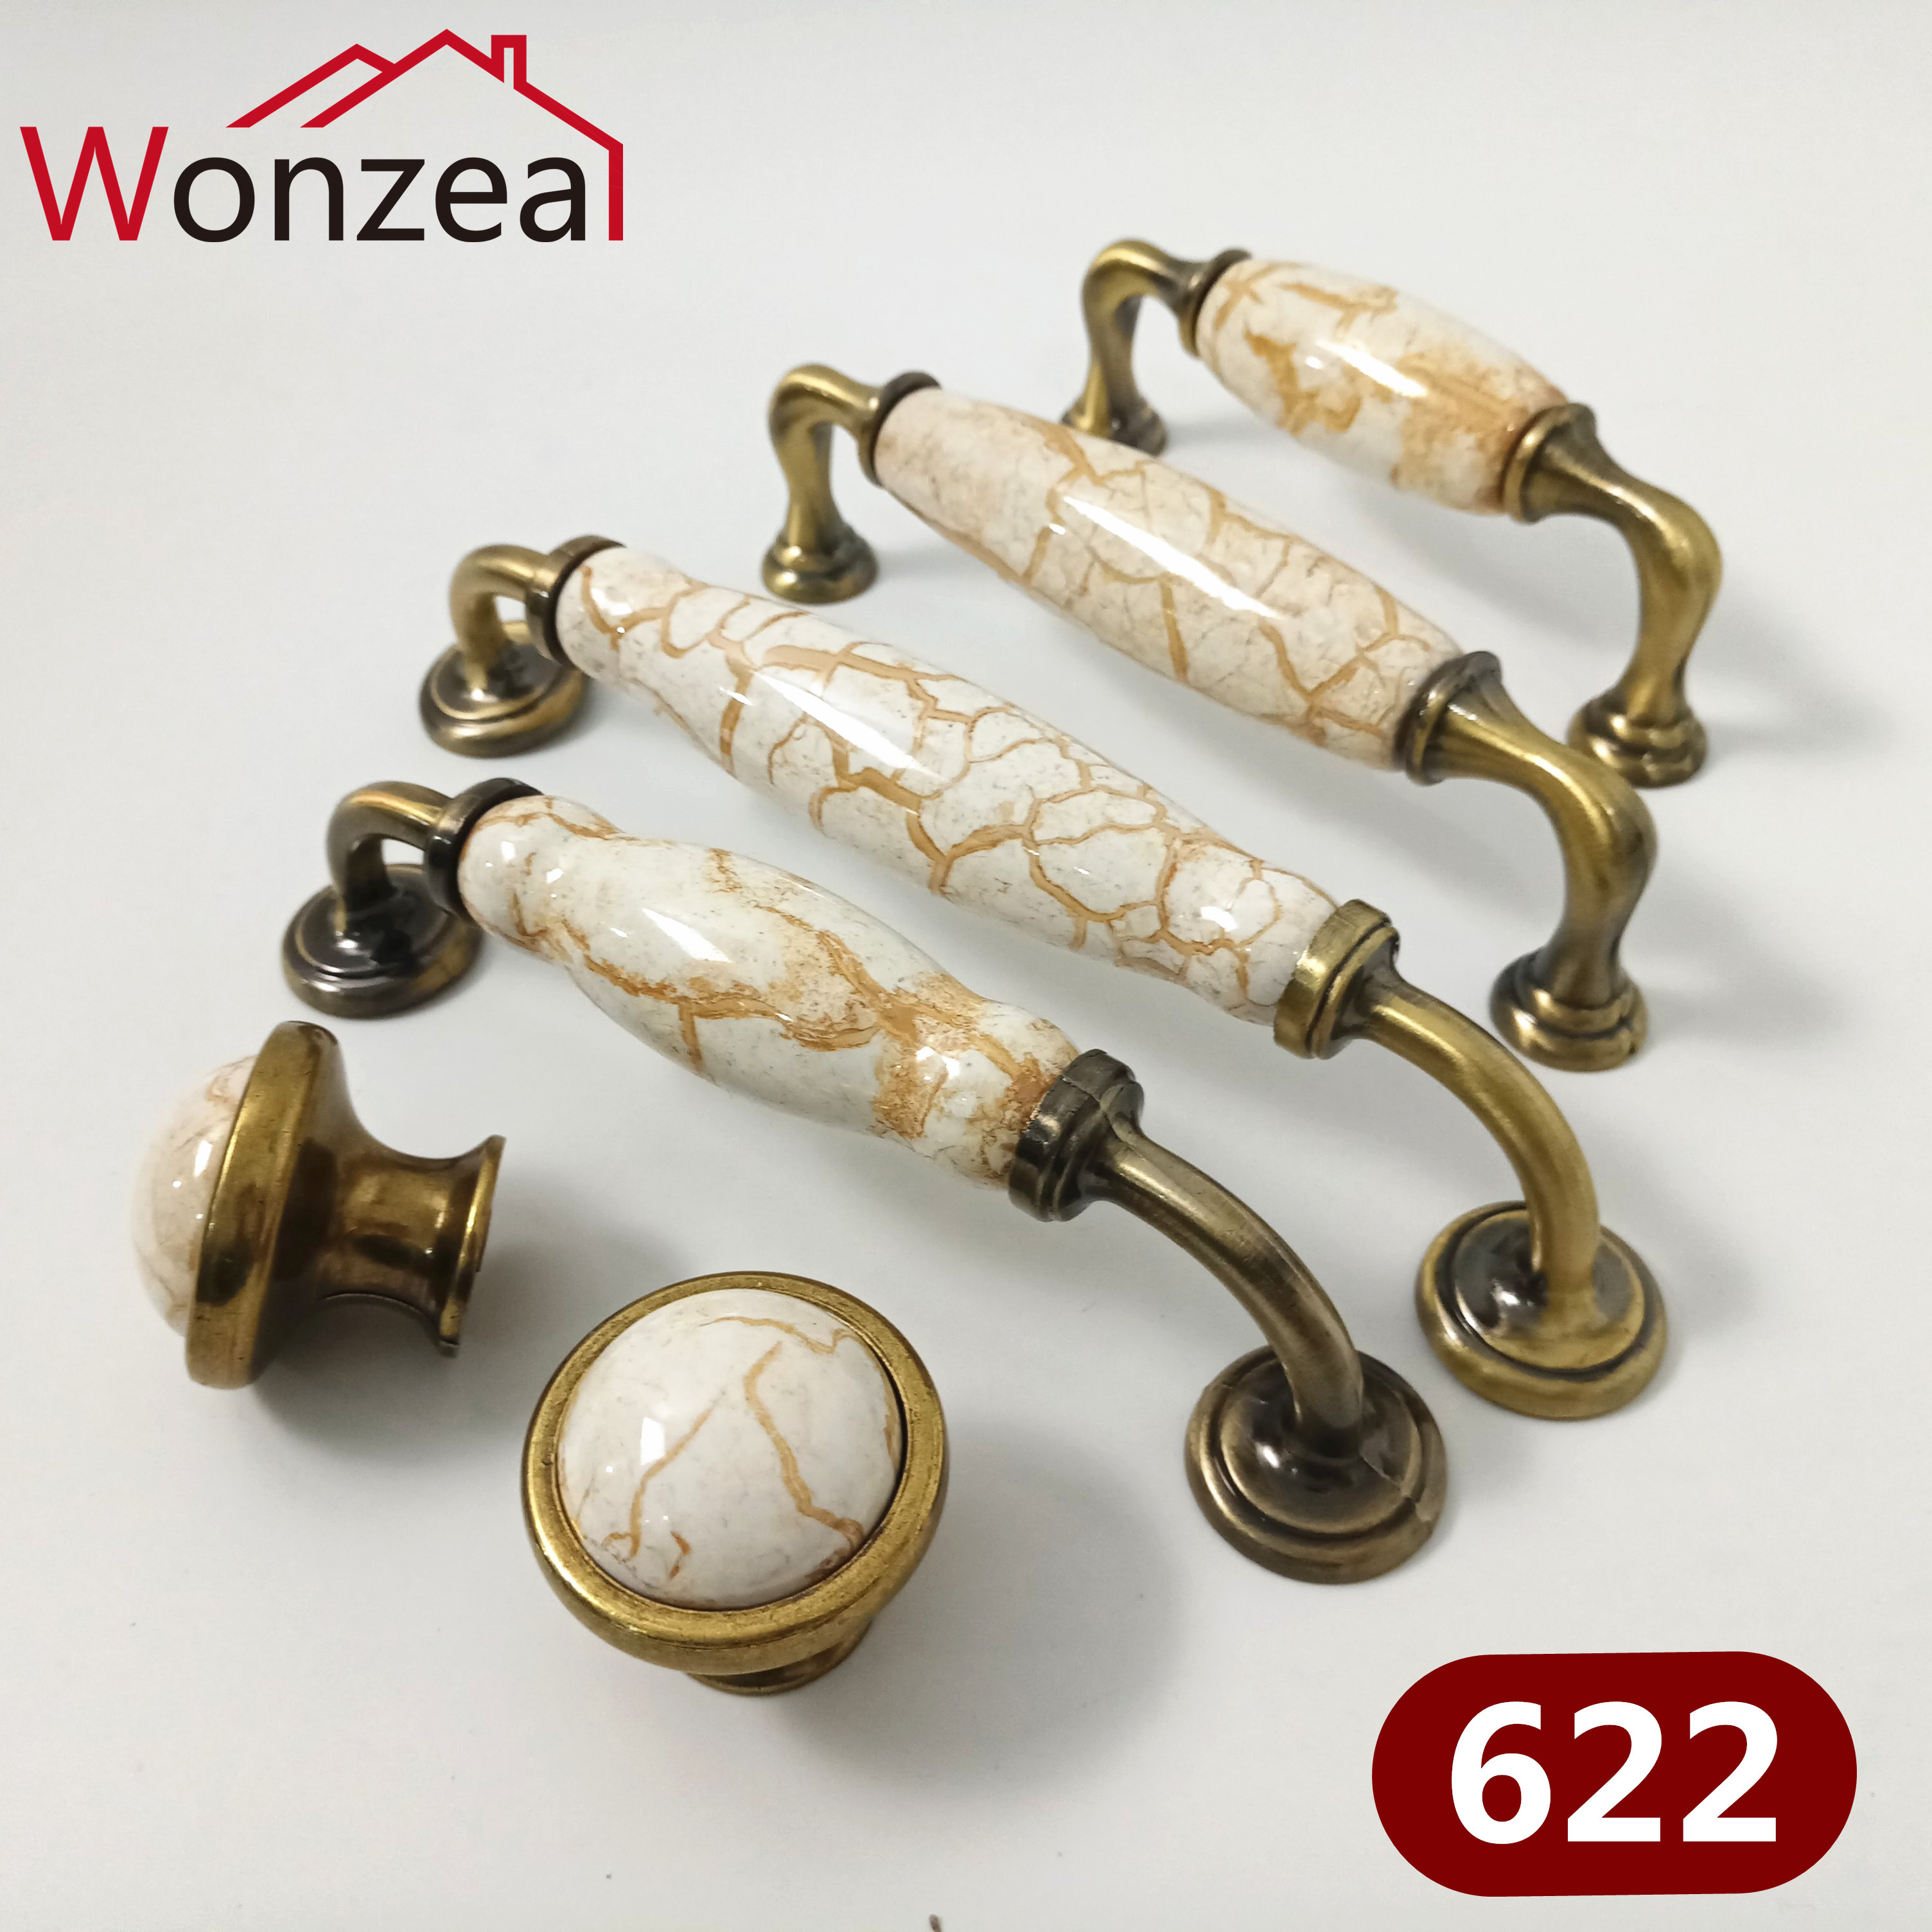 Antique Furniture Ceramic Knobs And Handles Marble Cabinet PUlls For Kitchen Cupboards Cabinet Door Knobs Drawer Pulls